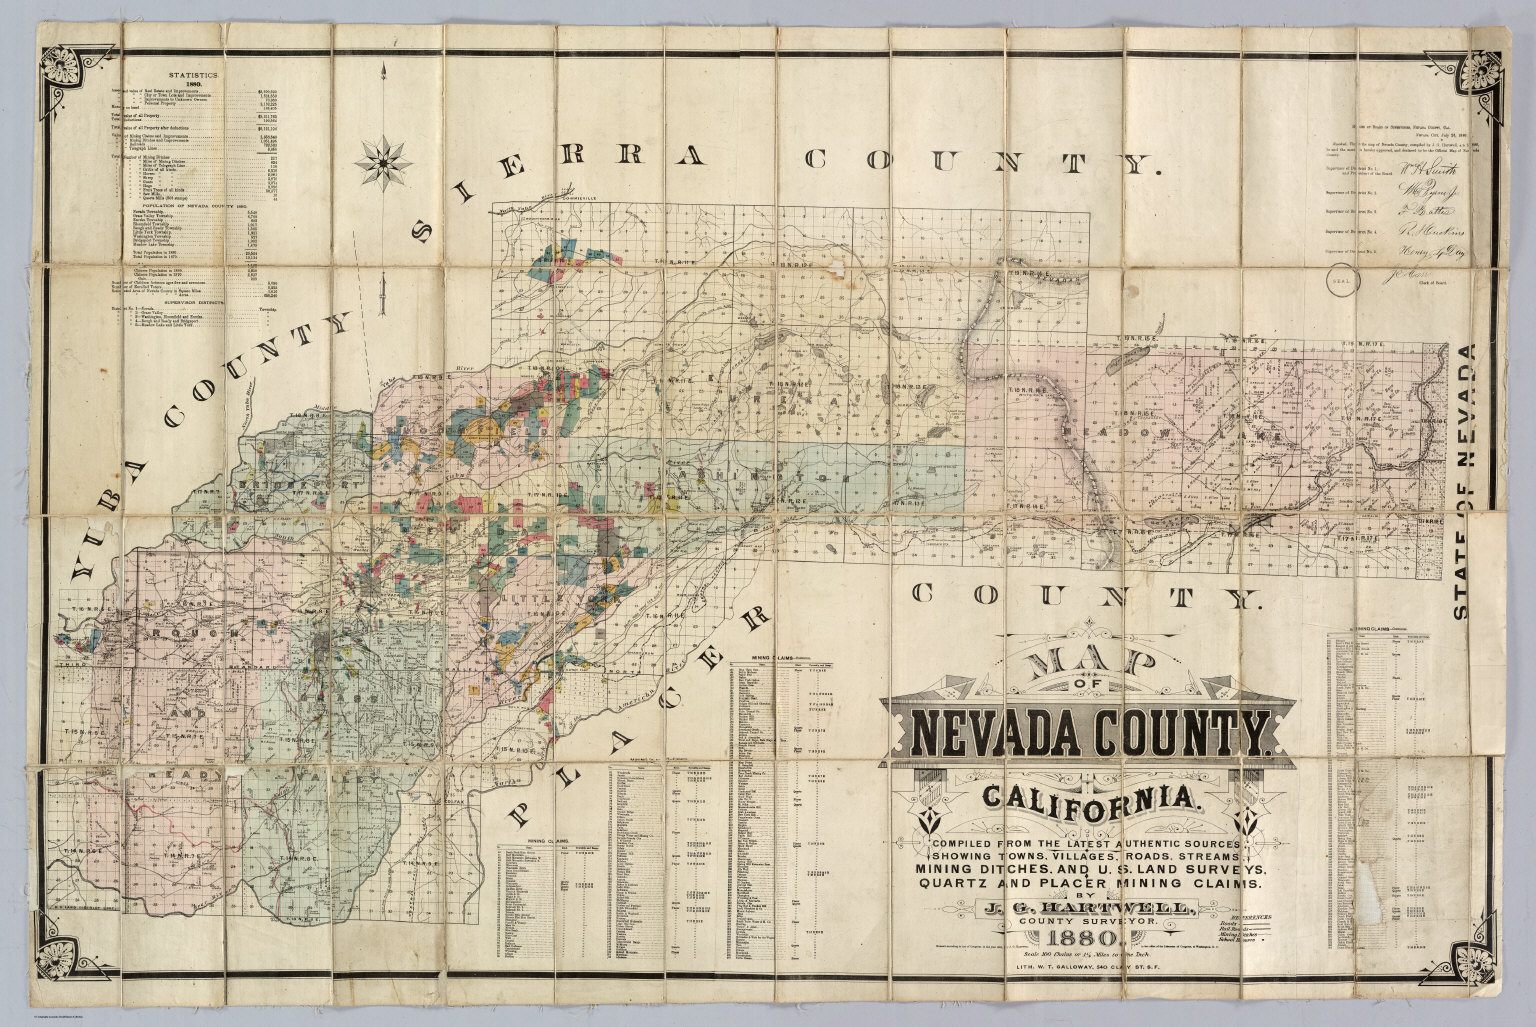 Nevada County, California. - David Rumsey Historical Map Collection